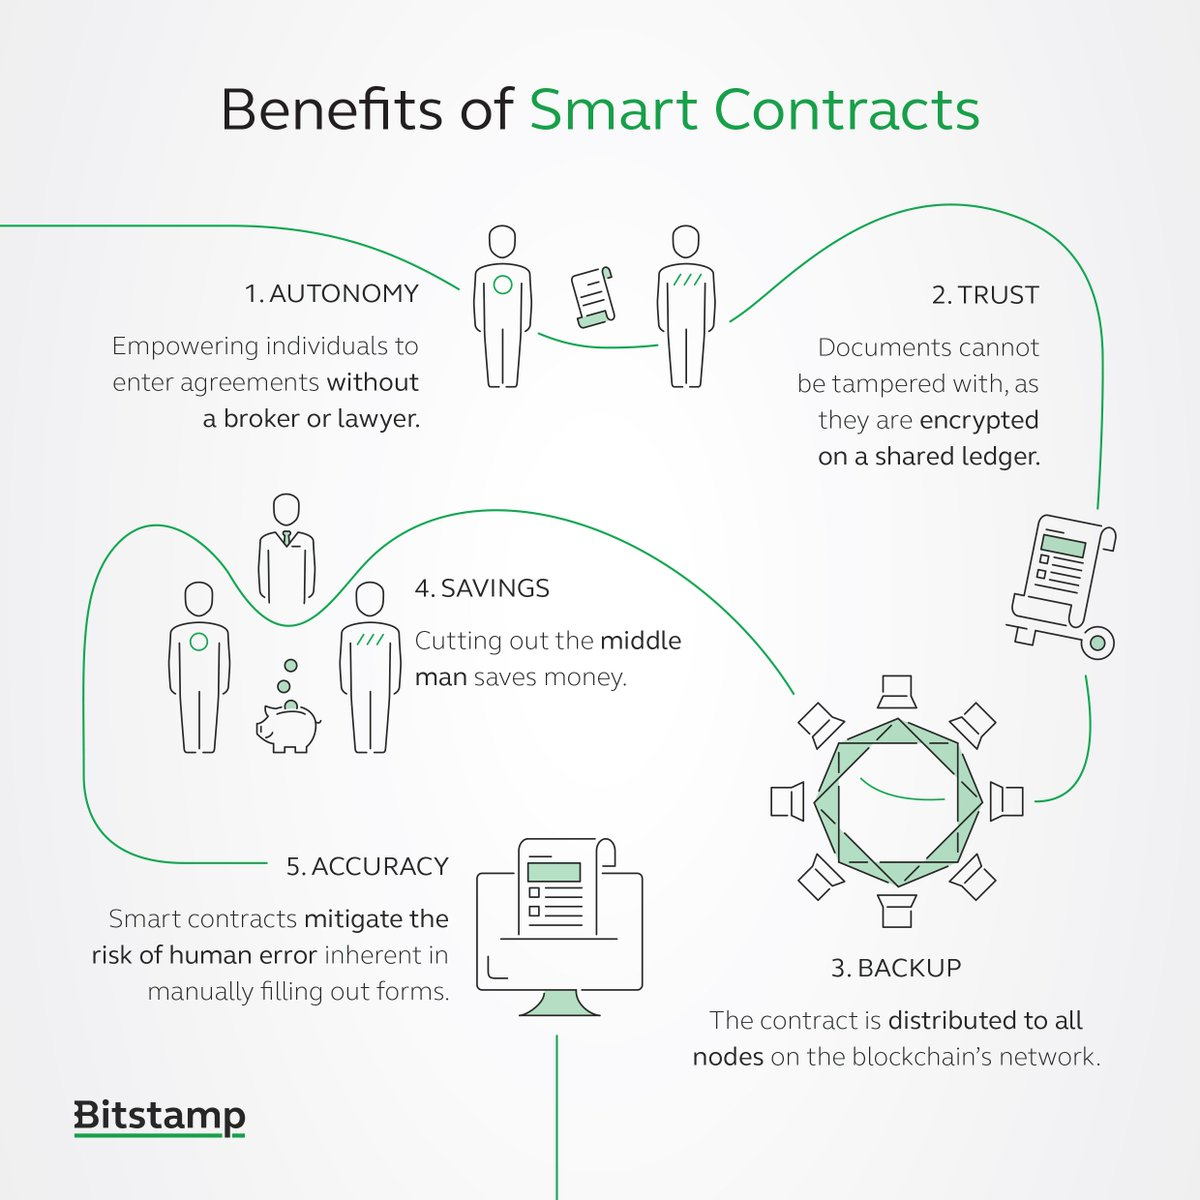 RT @Bitstamp: FOLLOW THE LINE: Benefits of Smart Contracts ???? #cryptobasics #SmartContracts https://t.co/EerWuQEtj8